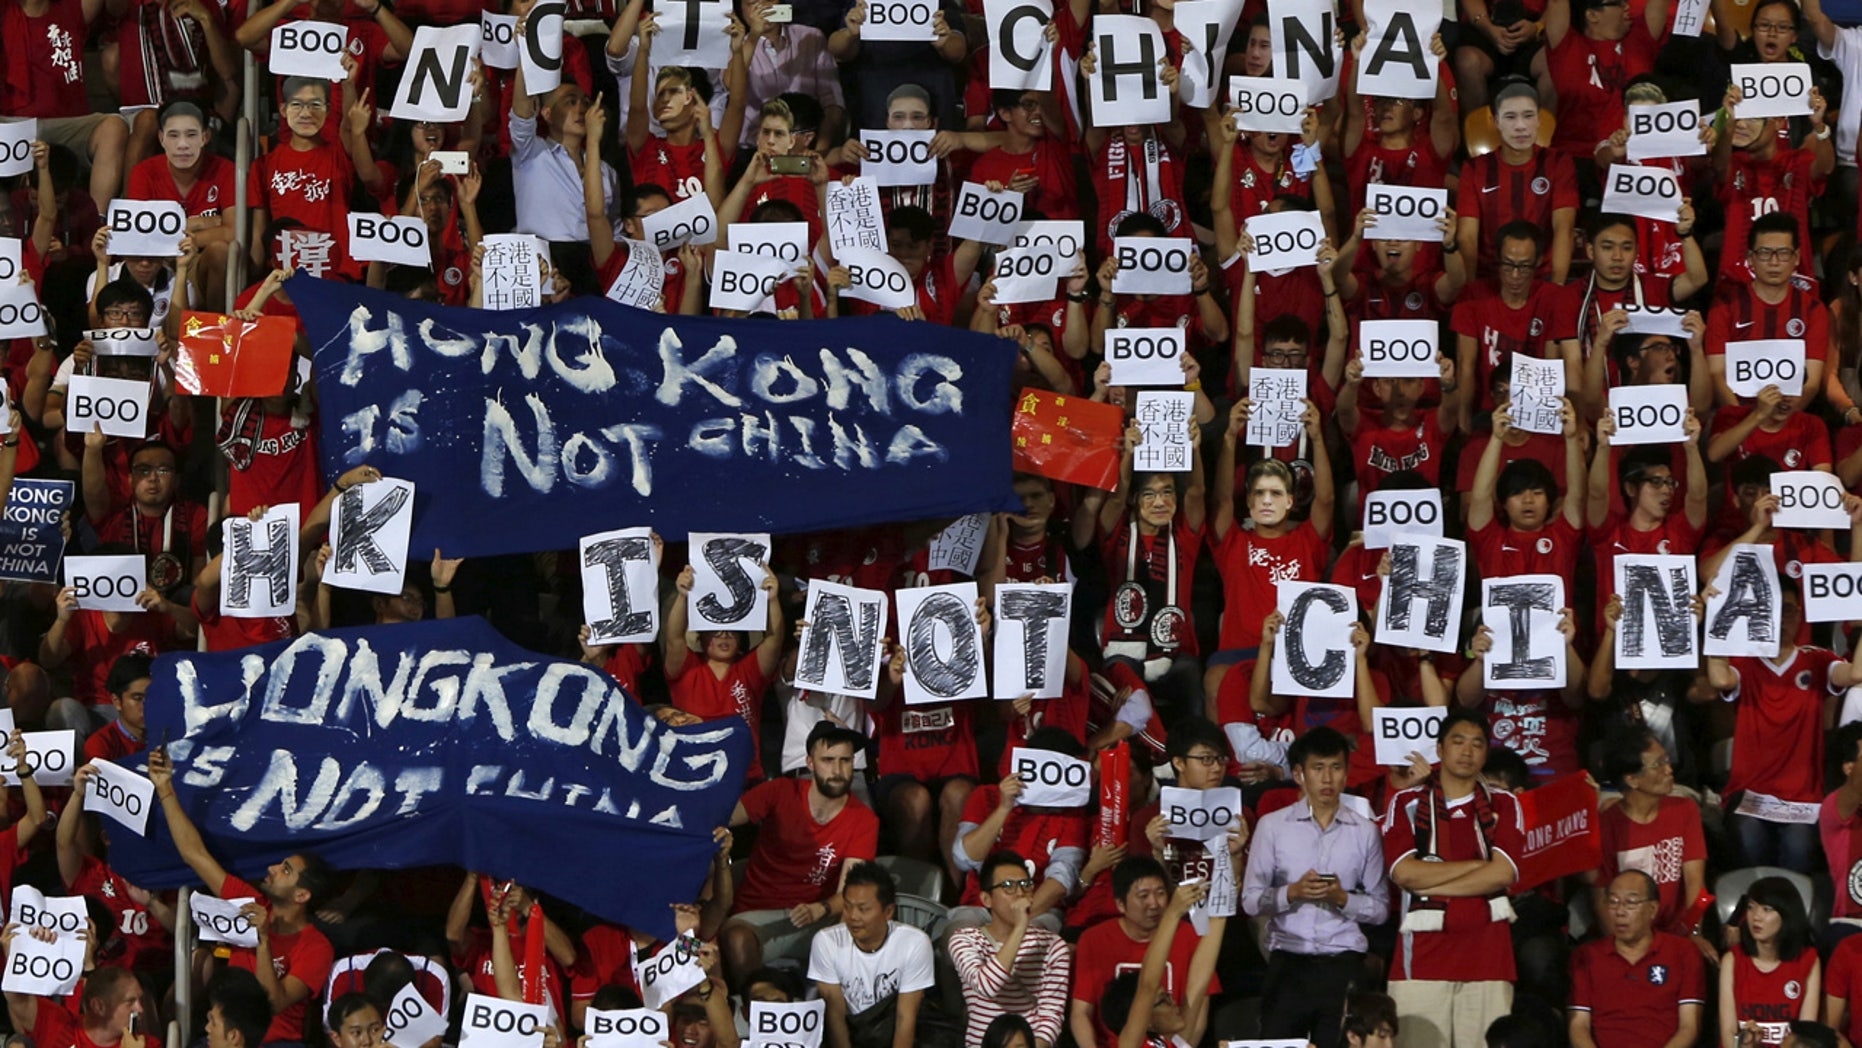 """FILE: Hong Kong fans hold banners and character signs which read """"Hong Kong is not China"""", during the 2015 World Cup qualifying match between Hong Kong and China, in Hong Kong."""